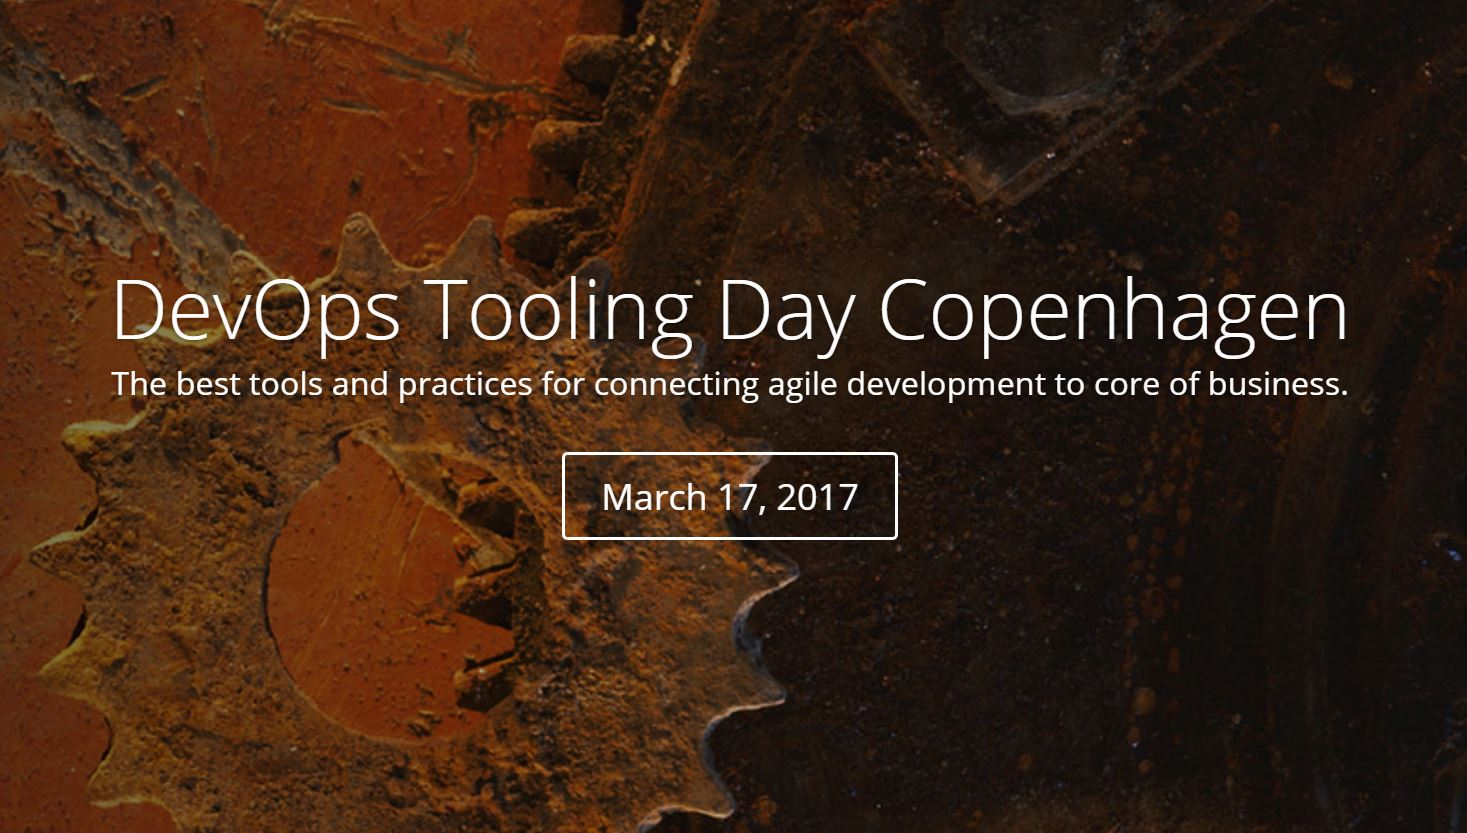 2017-03-17: DevOps Tooling Day Copenhagen